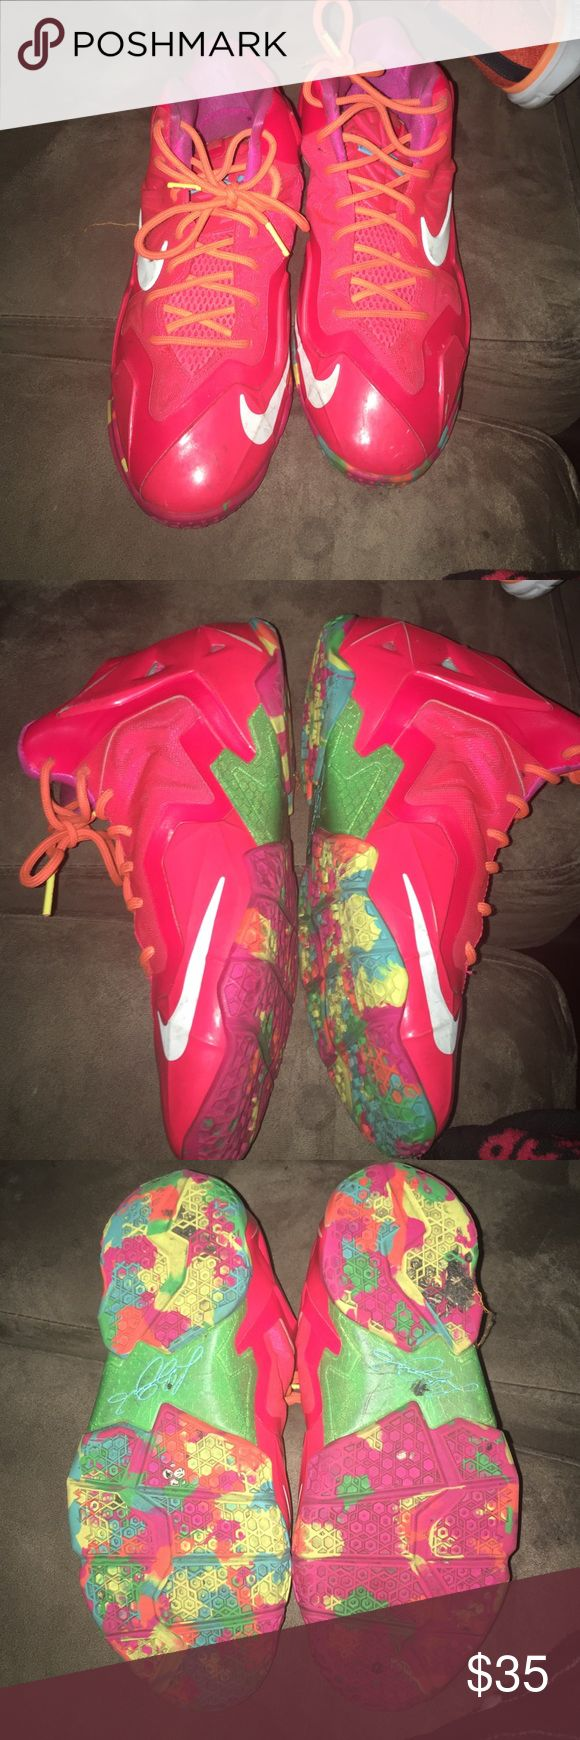 Fruity Pebble Lebron 11s Just need to be clean. Few scratches on them Nike Shoes Sneakers